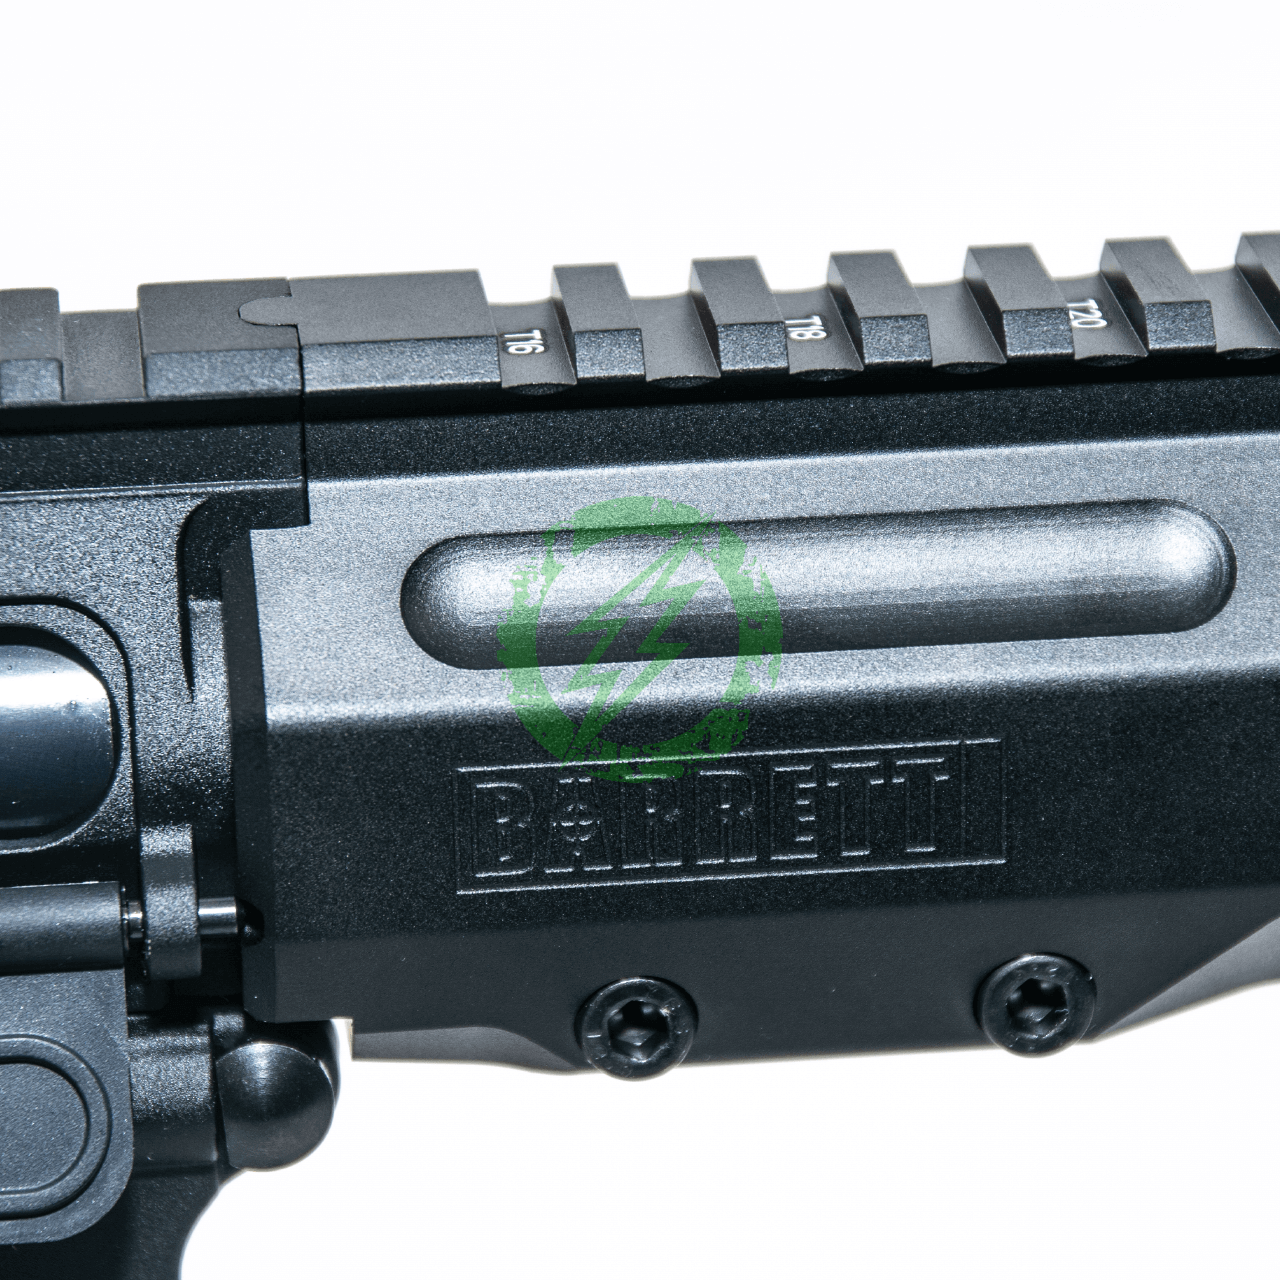 Krytac EMG Barrett Firearms REC7 DI AR15 AEG Training Rifle Carbine